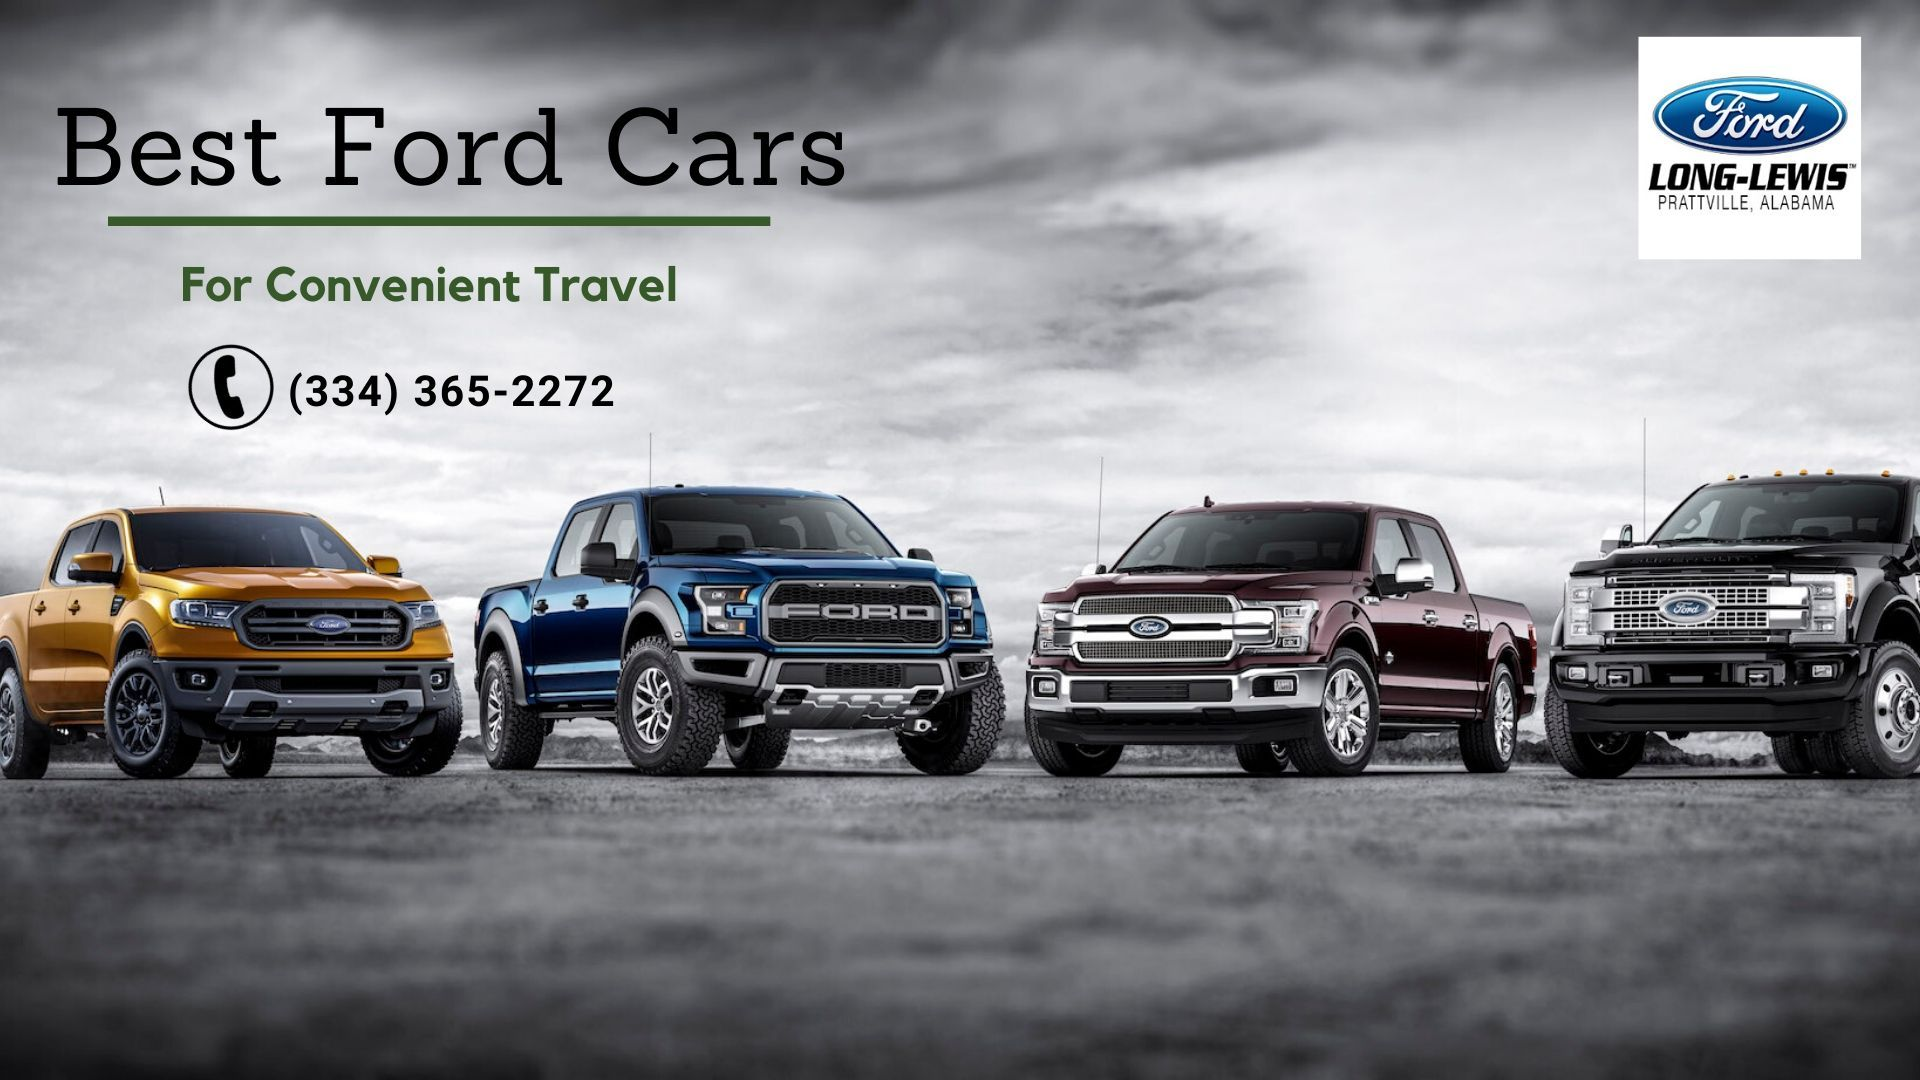 Need best ford car in Montgomery Alabama? Our LongLewis